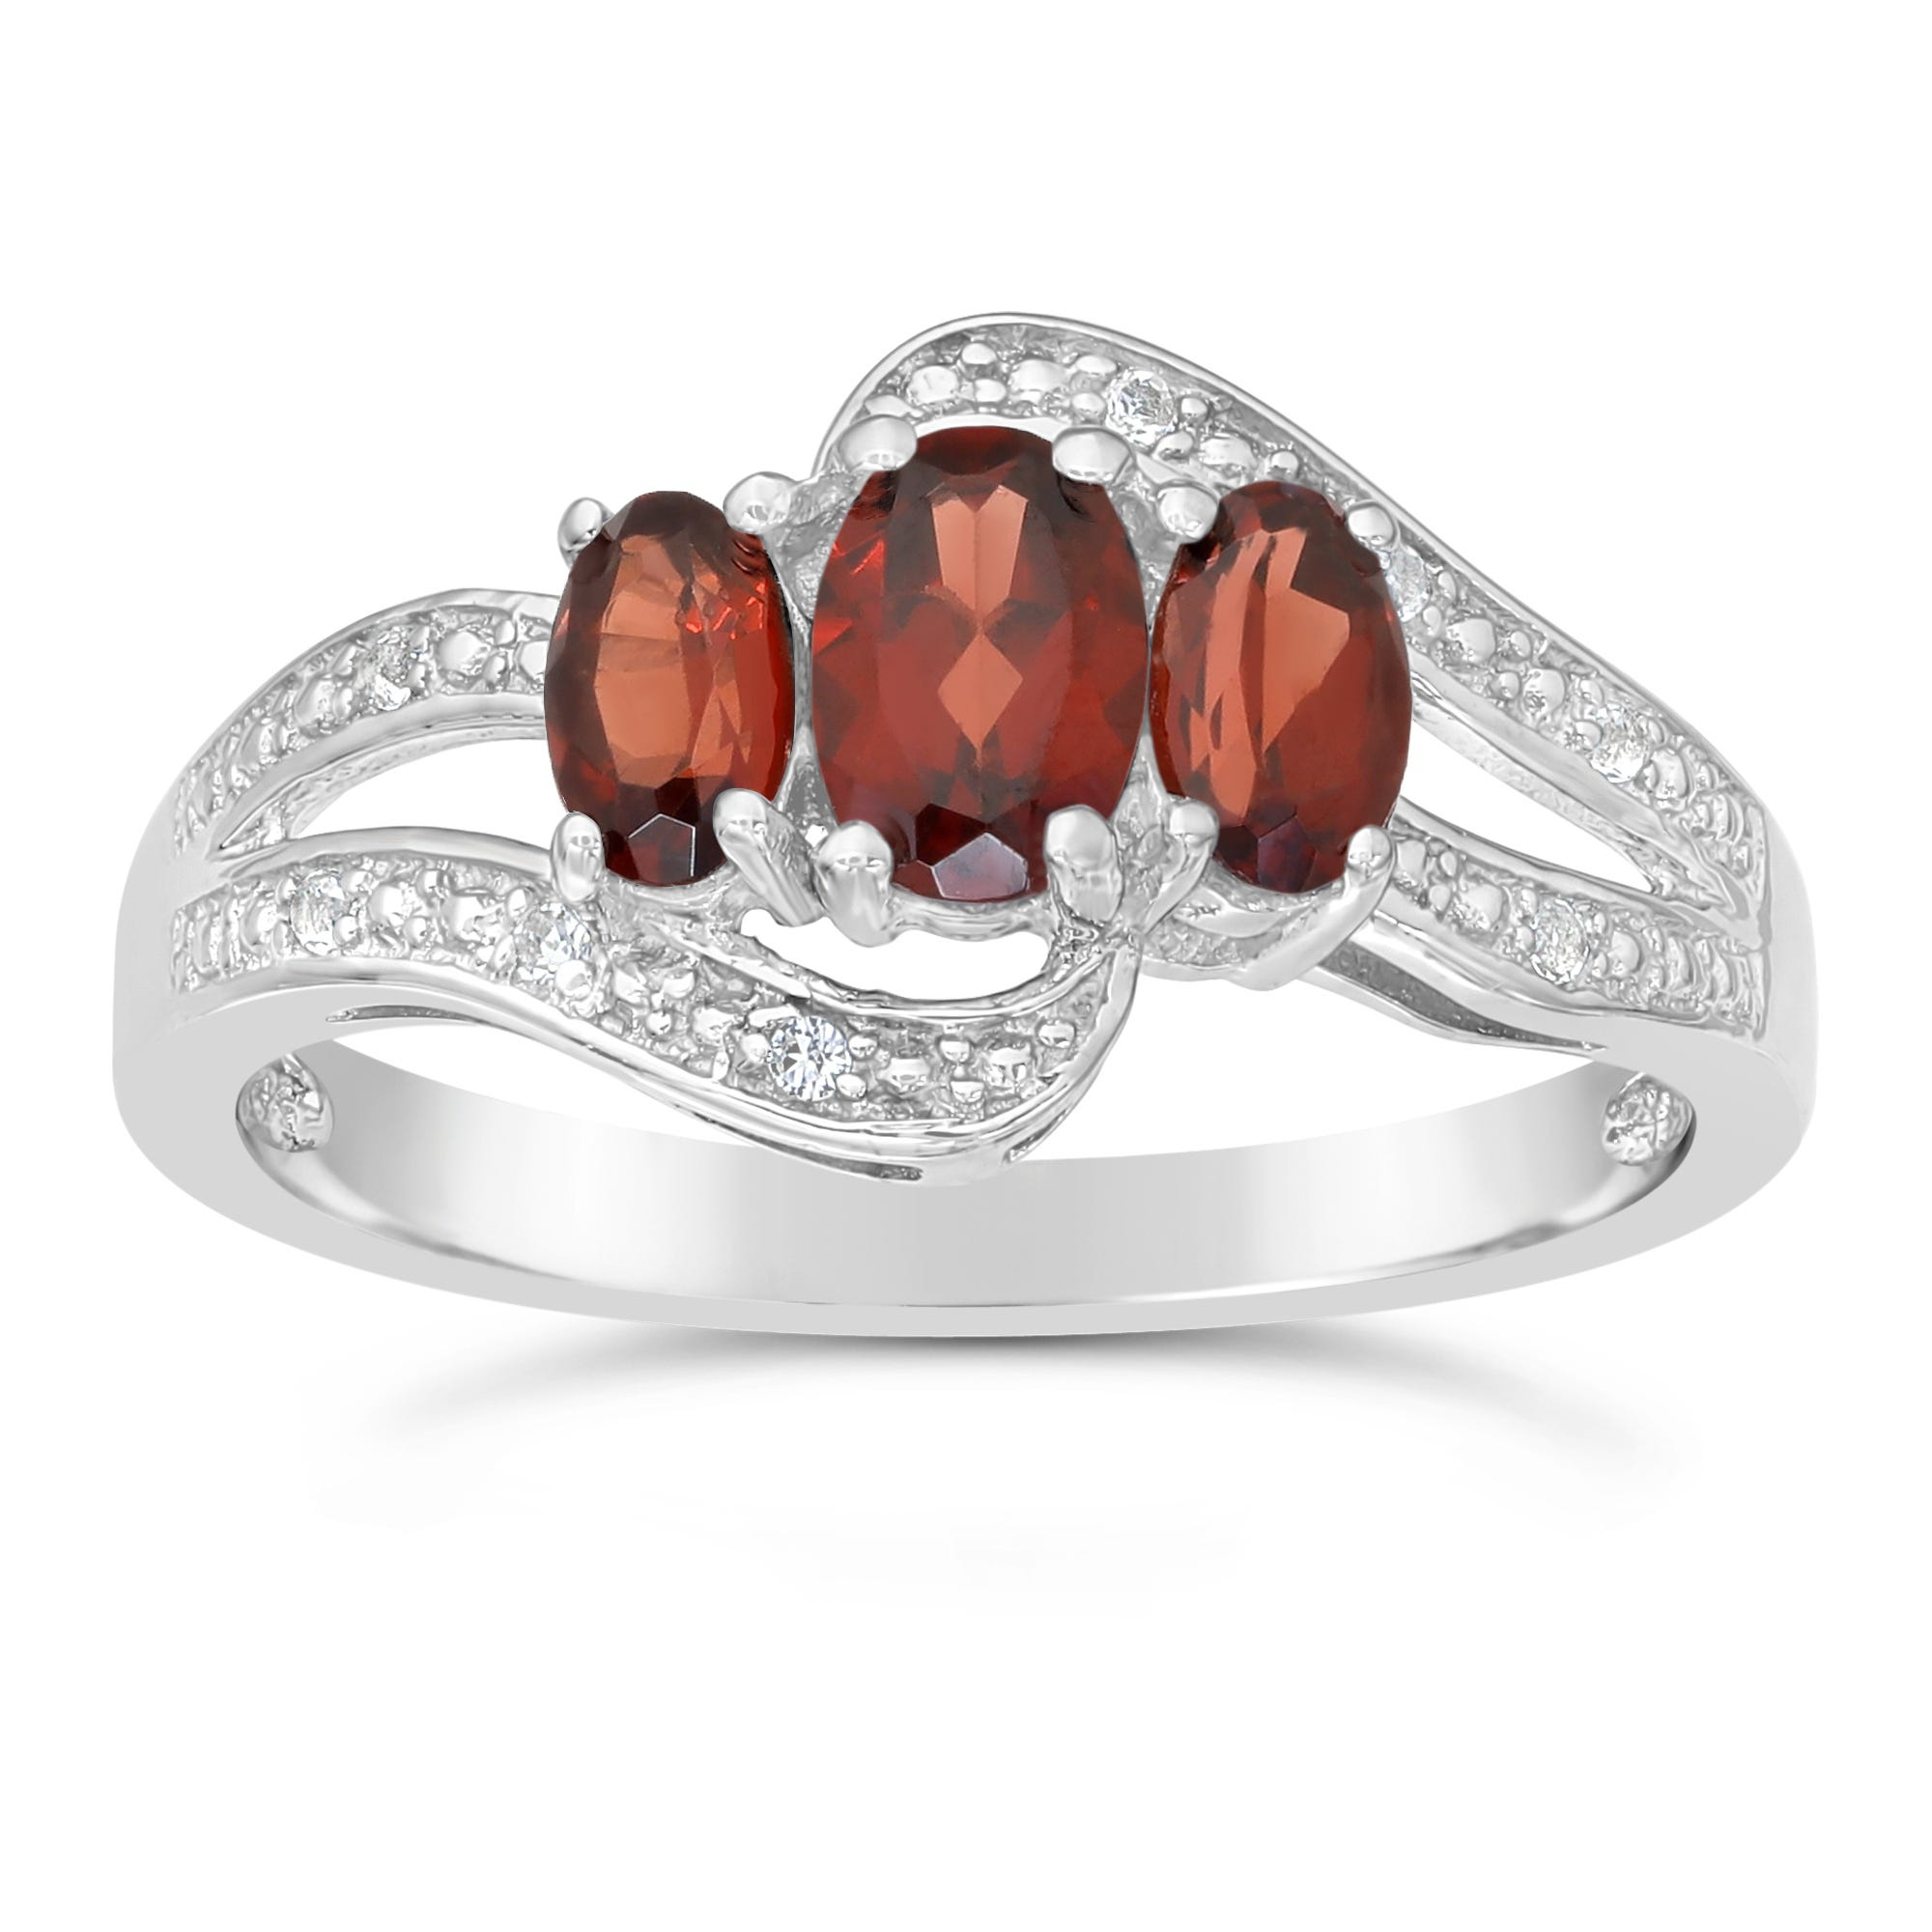 Triple Oval Garnet and White Topaz Ring in Sterling Silver